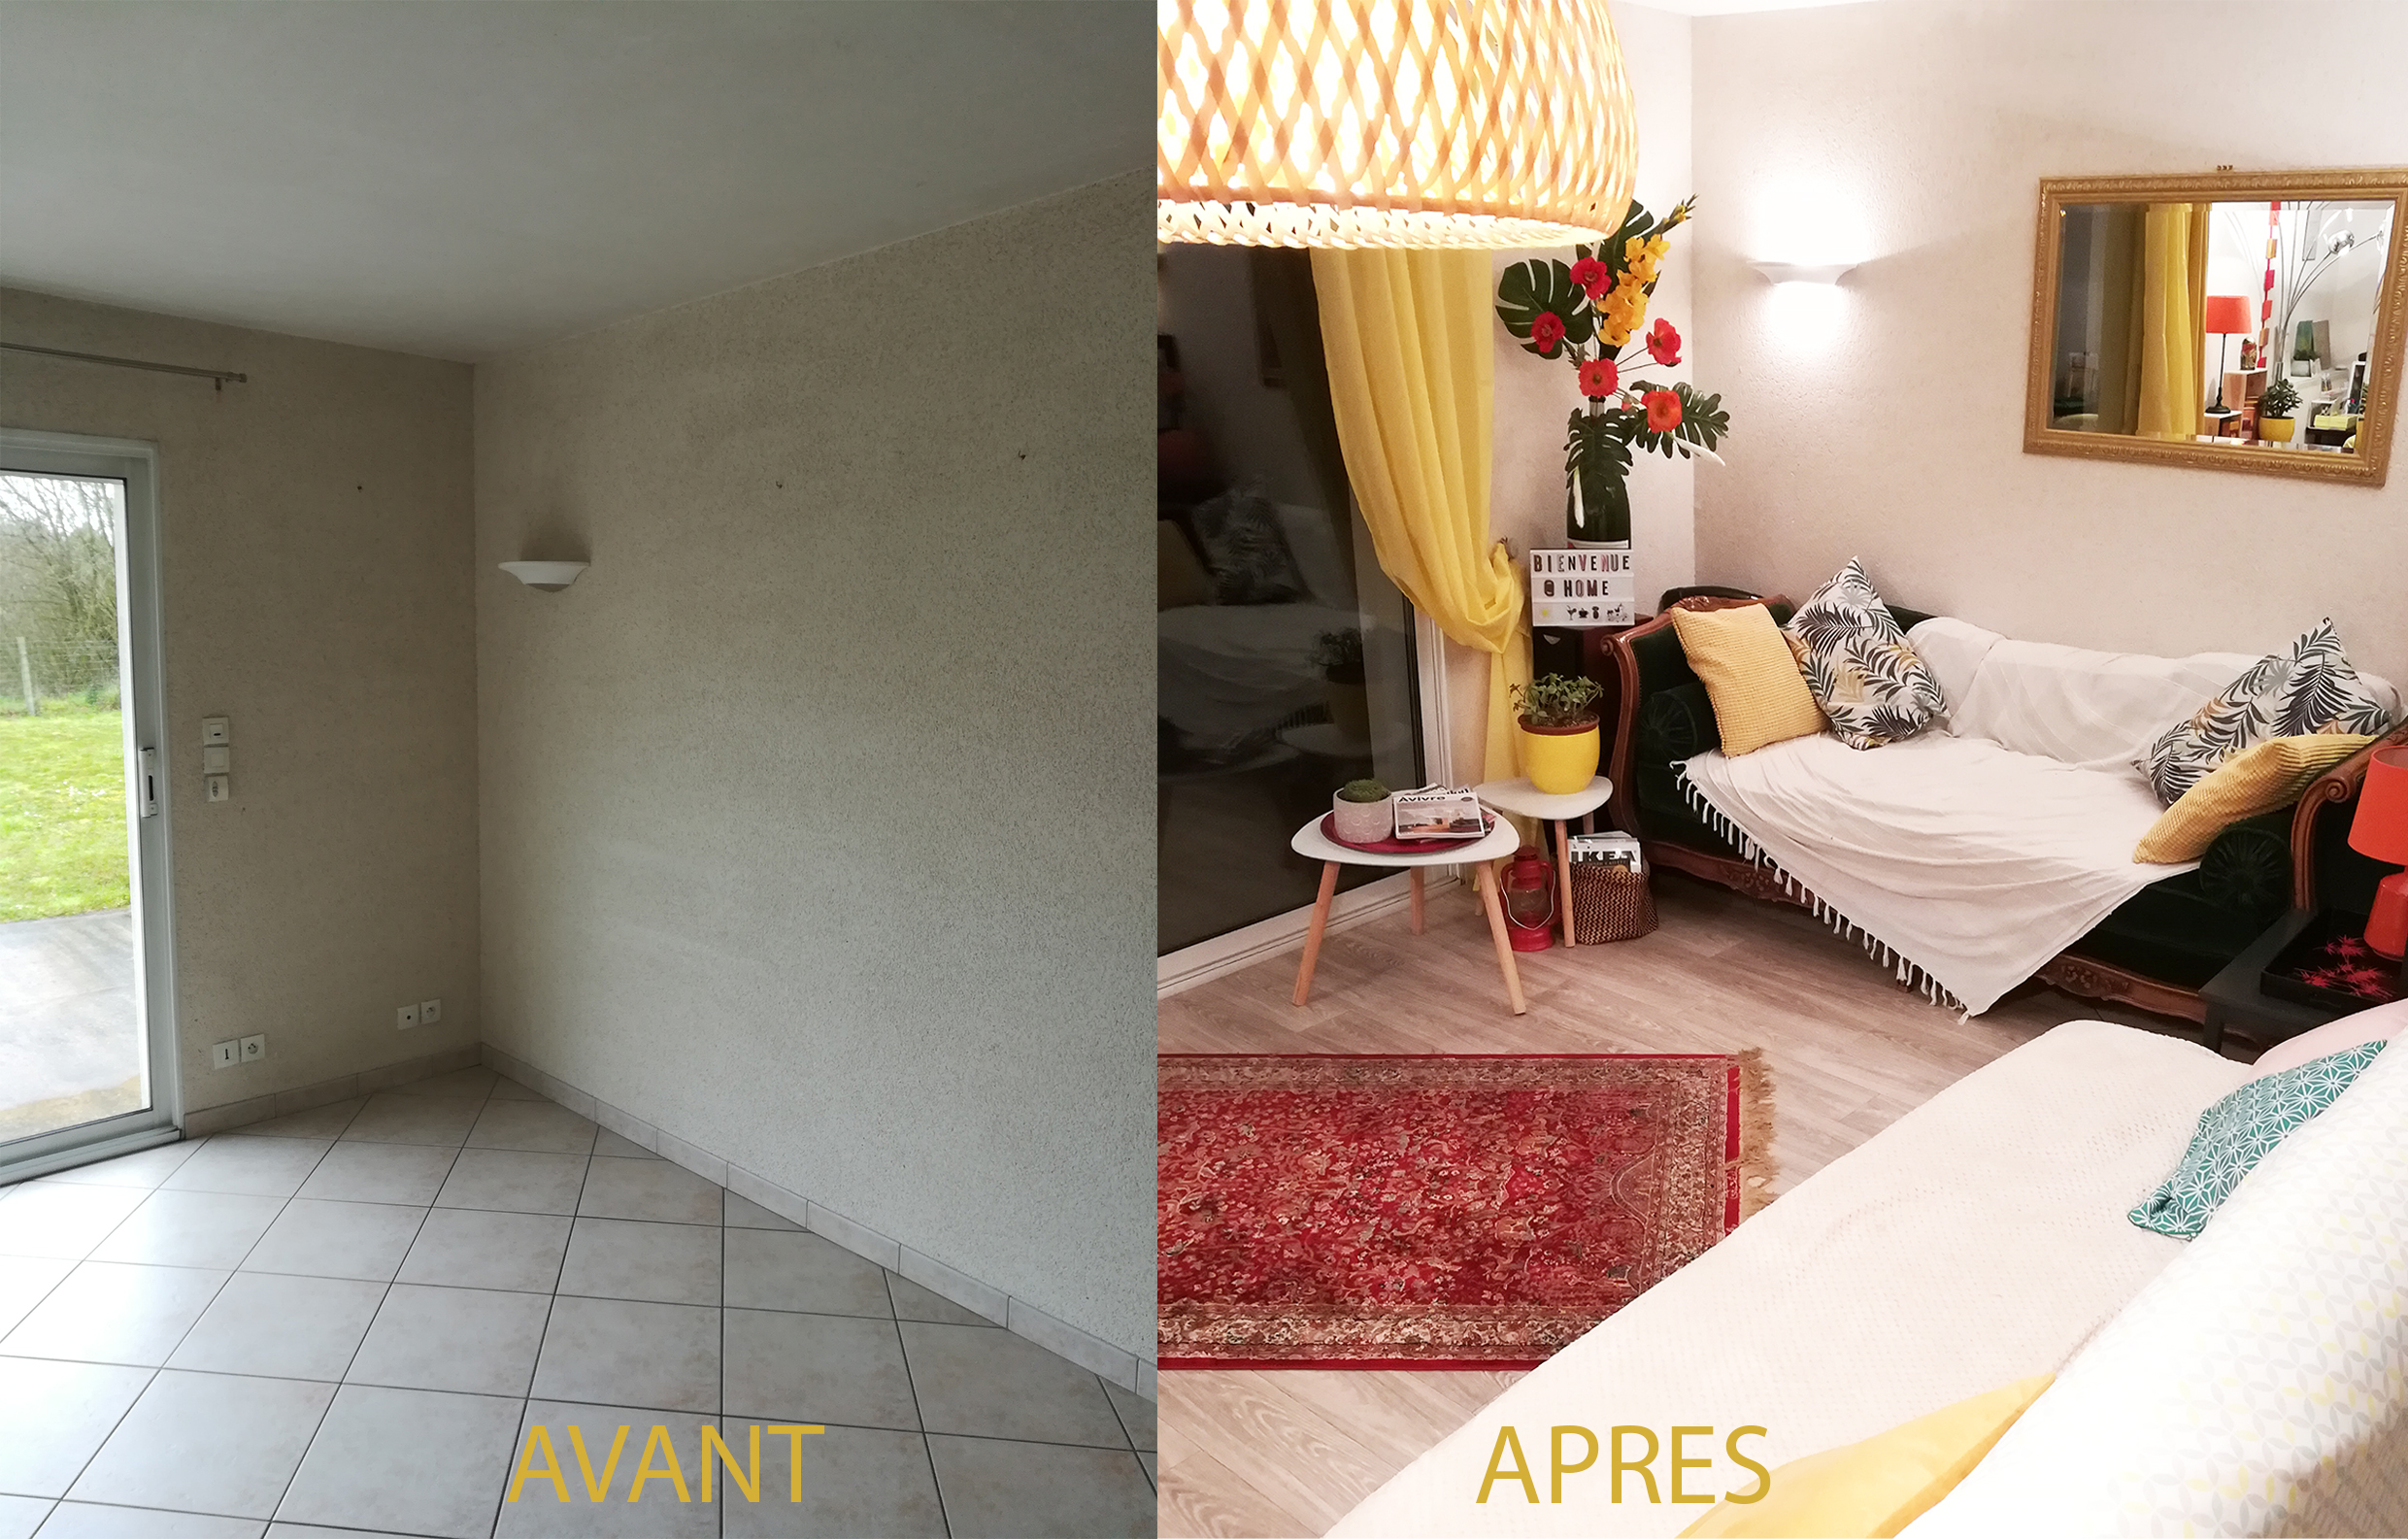 avant-apres amenagement deco revelation d interieur